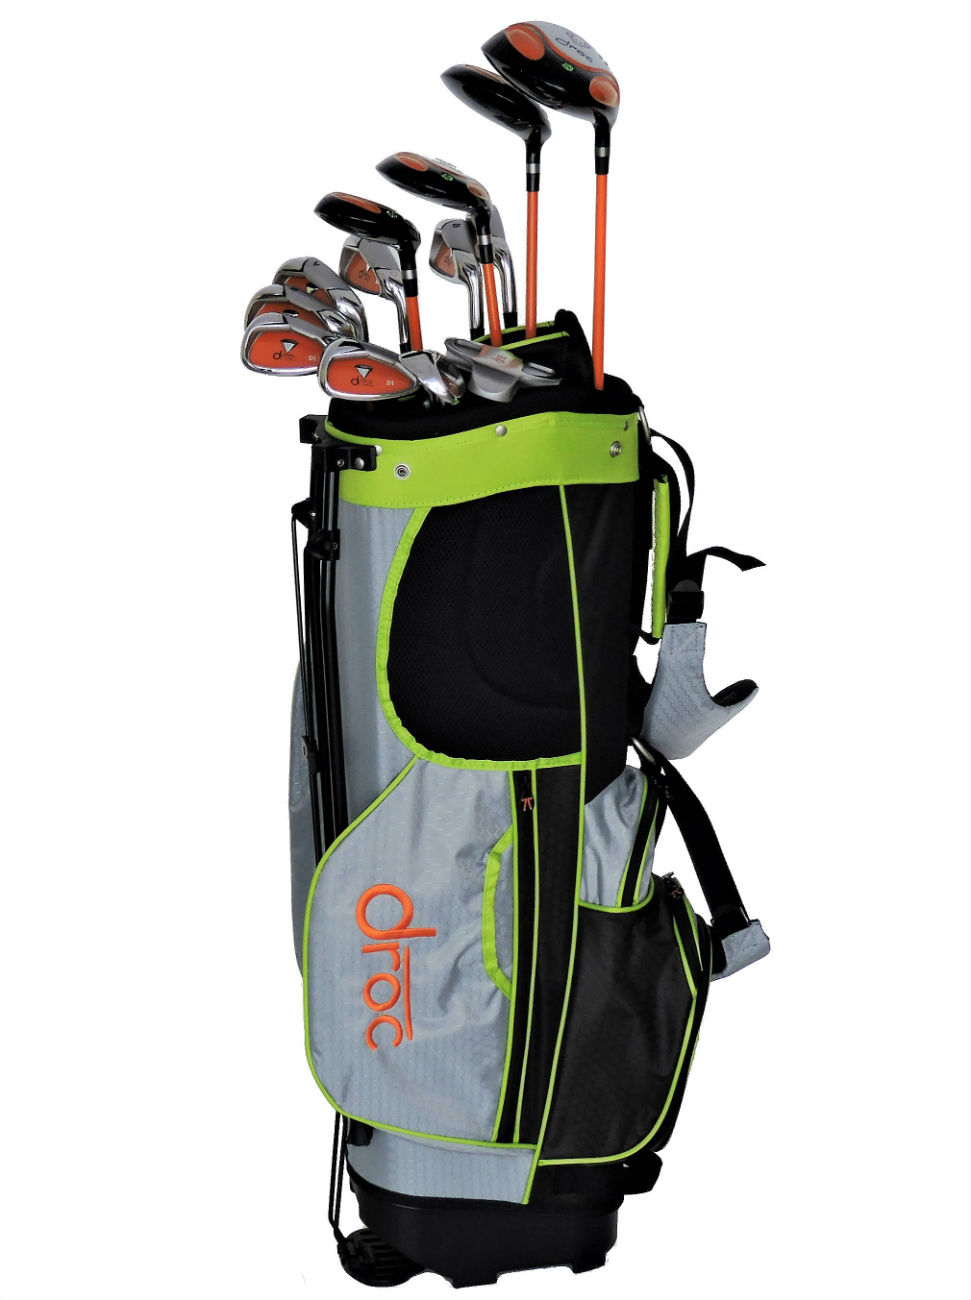 DROC - Dimond Series *13*  Pcs Golf Club Set & Golf Bag Age 11-14 Right Handed